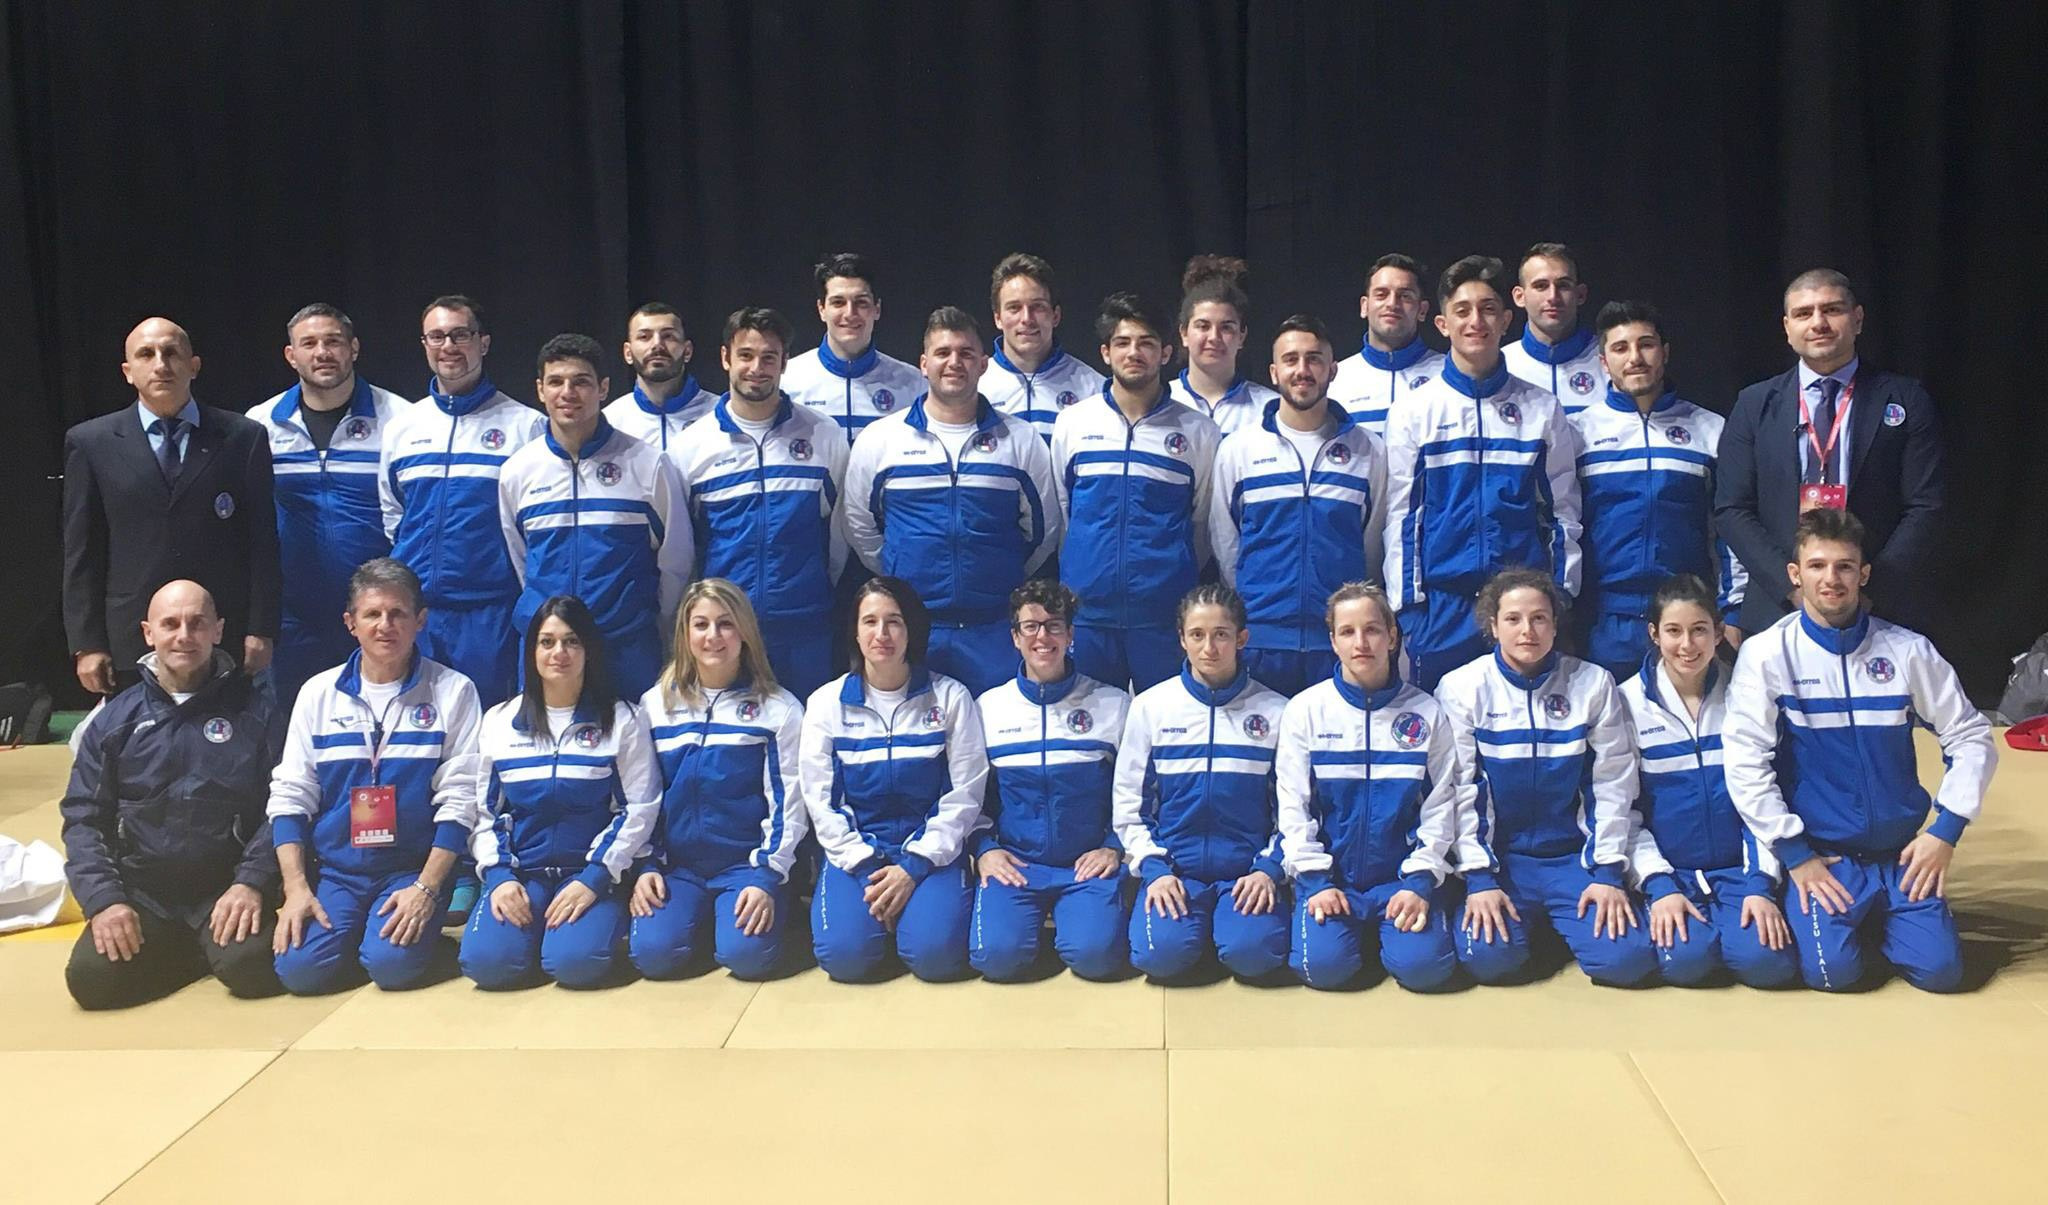 The ITALIAN TEAM wins 4 Silvers and 3 Bronzes at the World Ju-Jitsu Championships